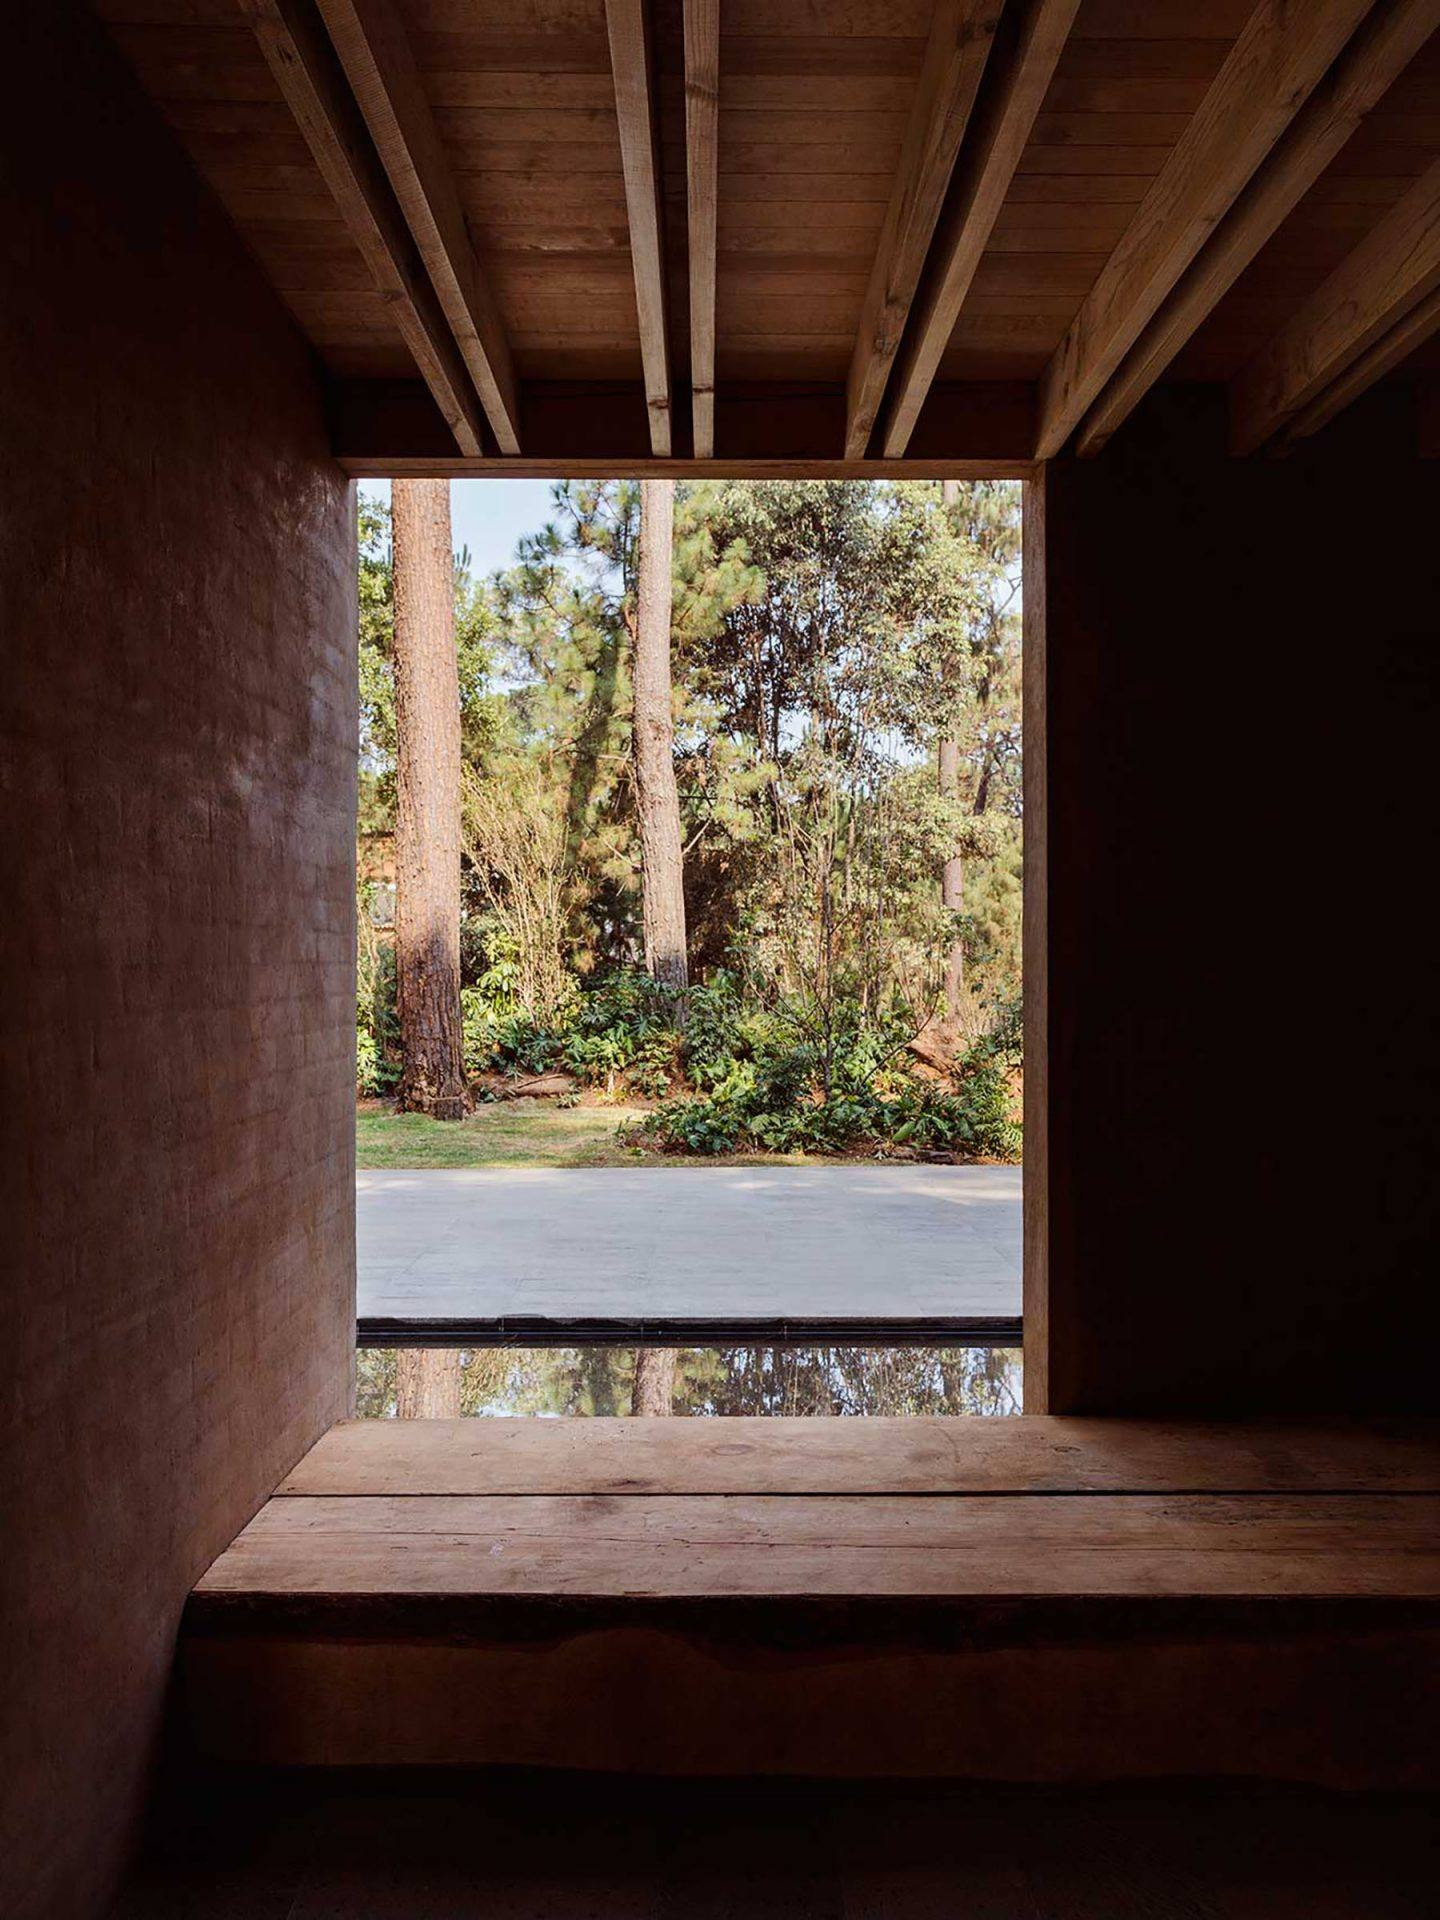 IGNANT-Architecture-Taller-Hector-Barroso-Entre-Pinos-19